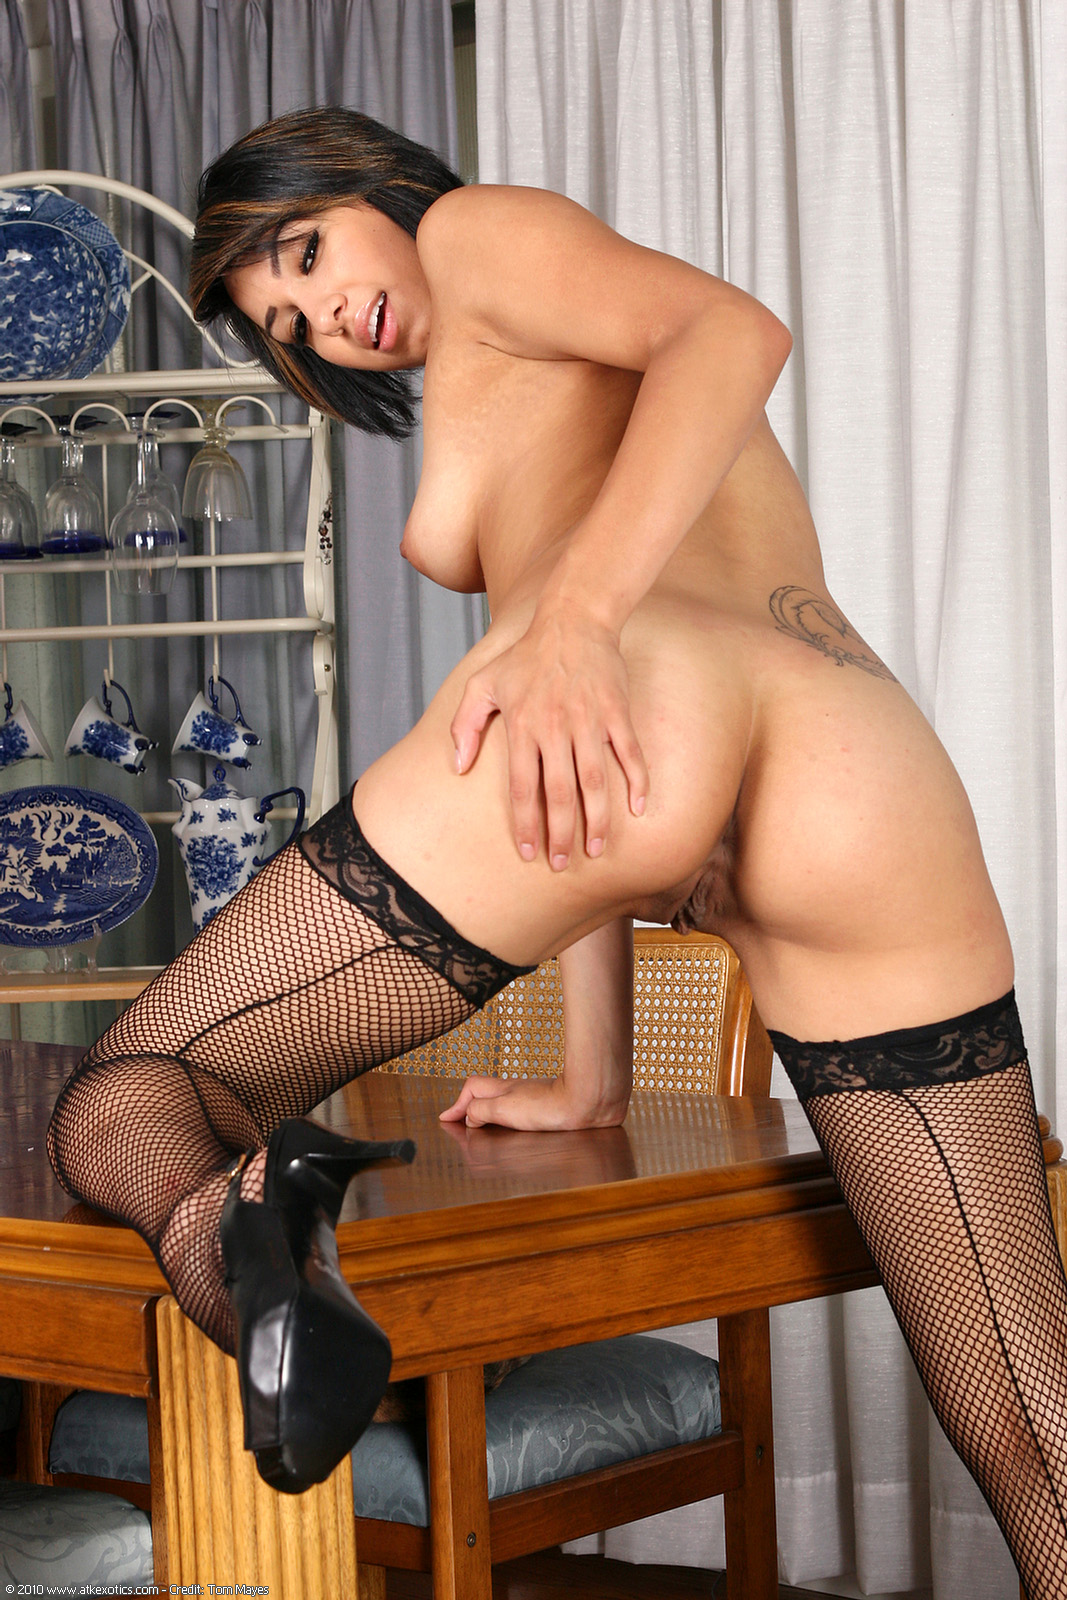 Ass, Brunette, Heels, Latina, Short Hair, Solo, Stockings, Table, Tattoo picture featuring Amarie